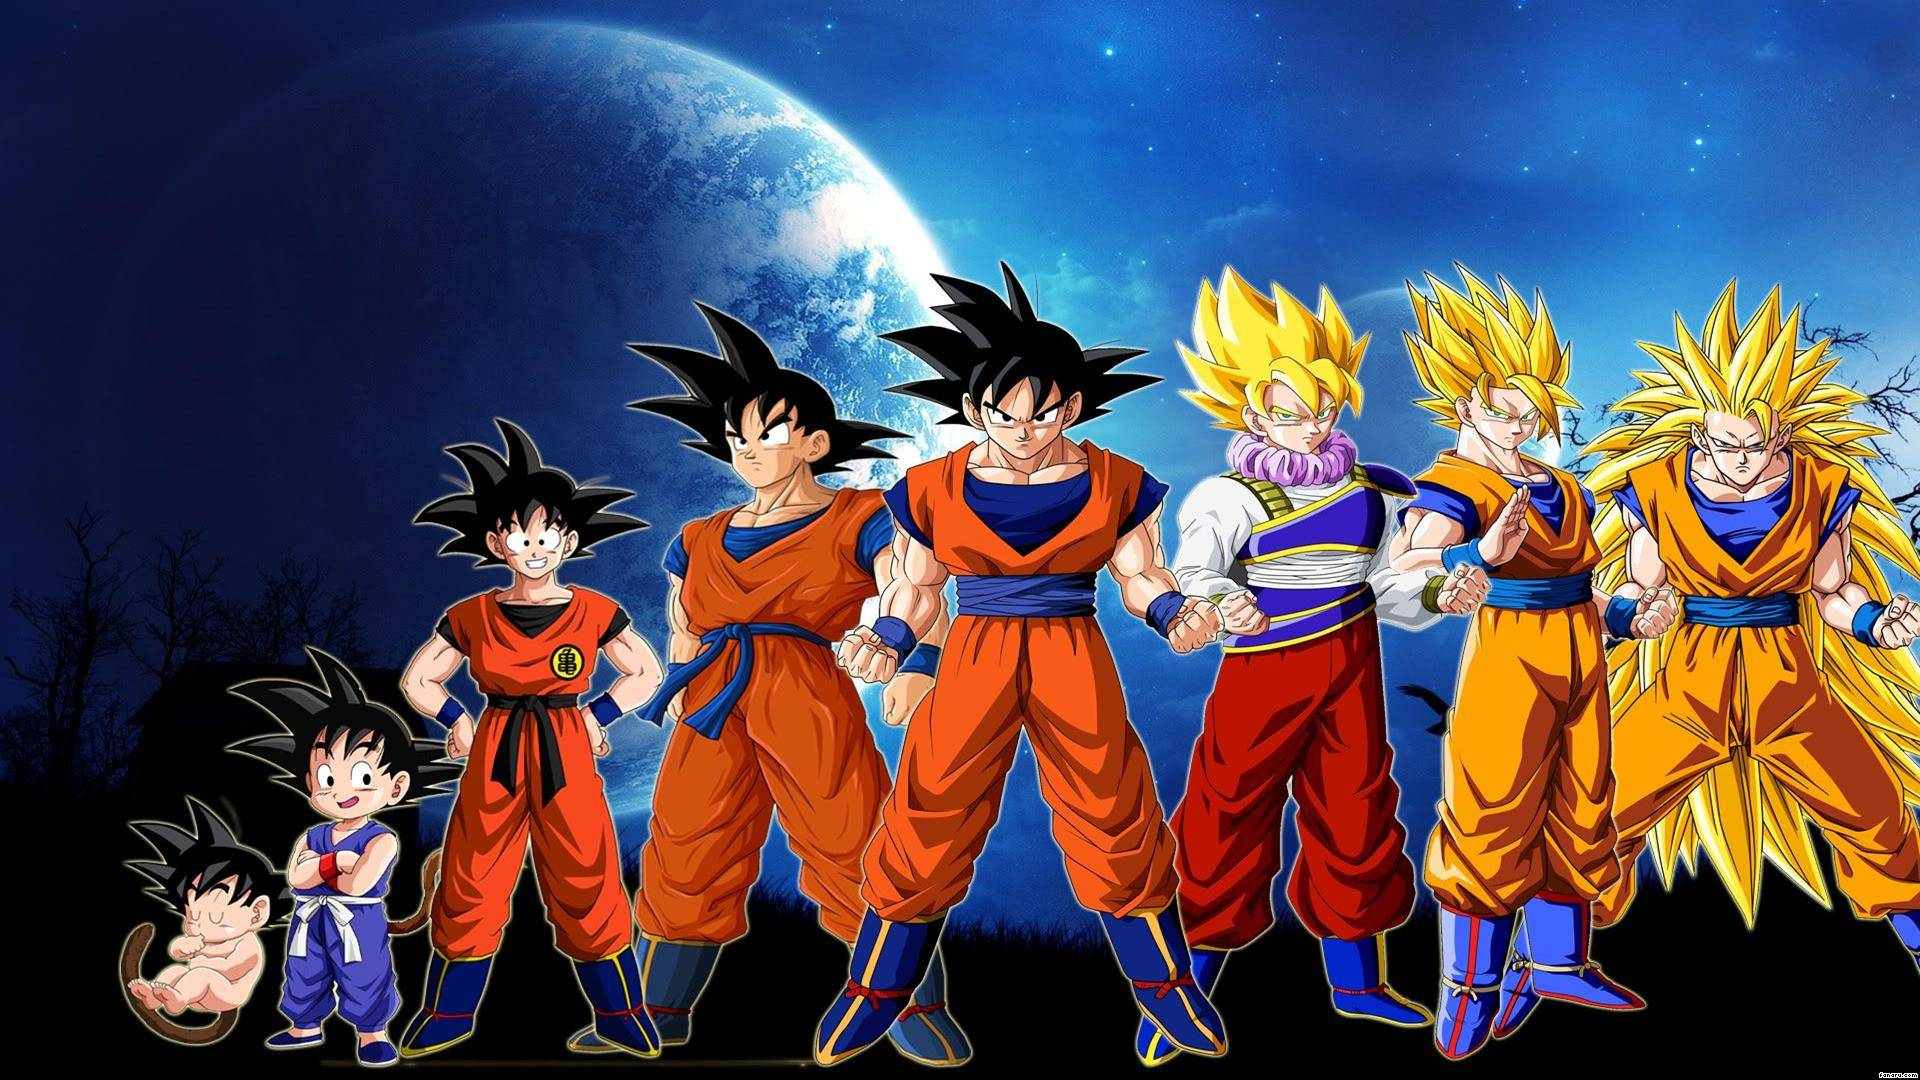 Dragonball Z Wallpaper